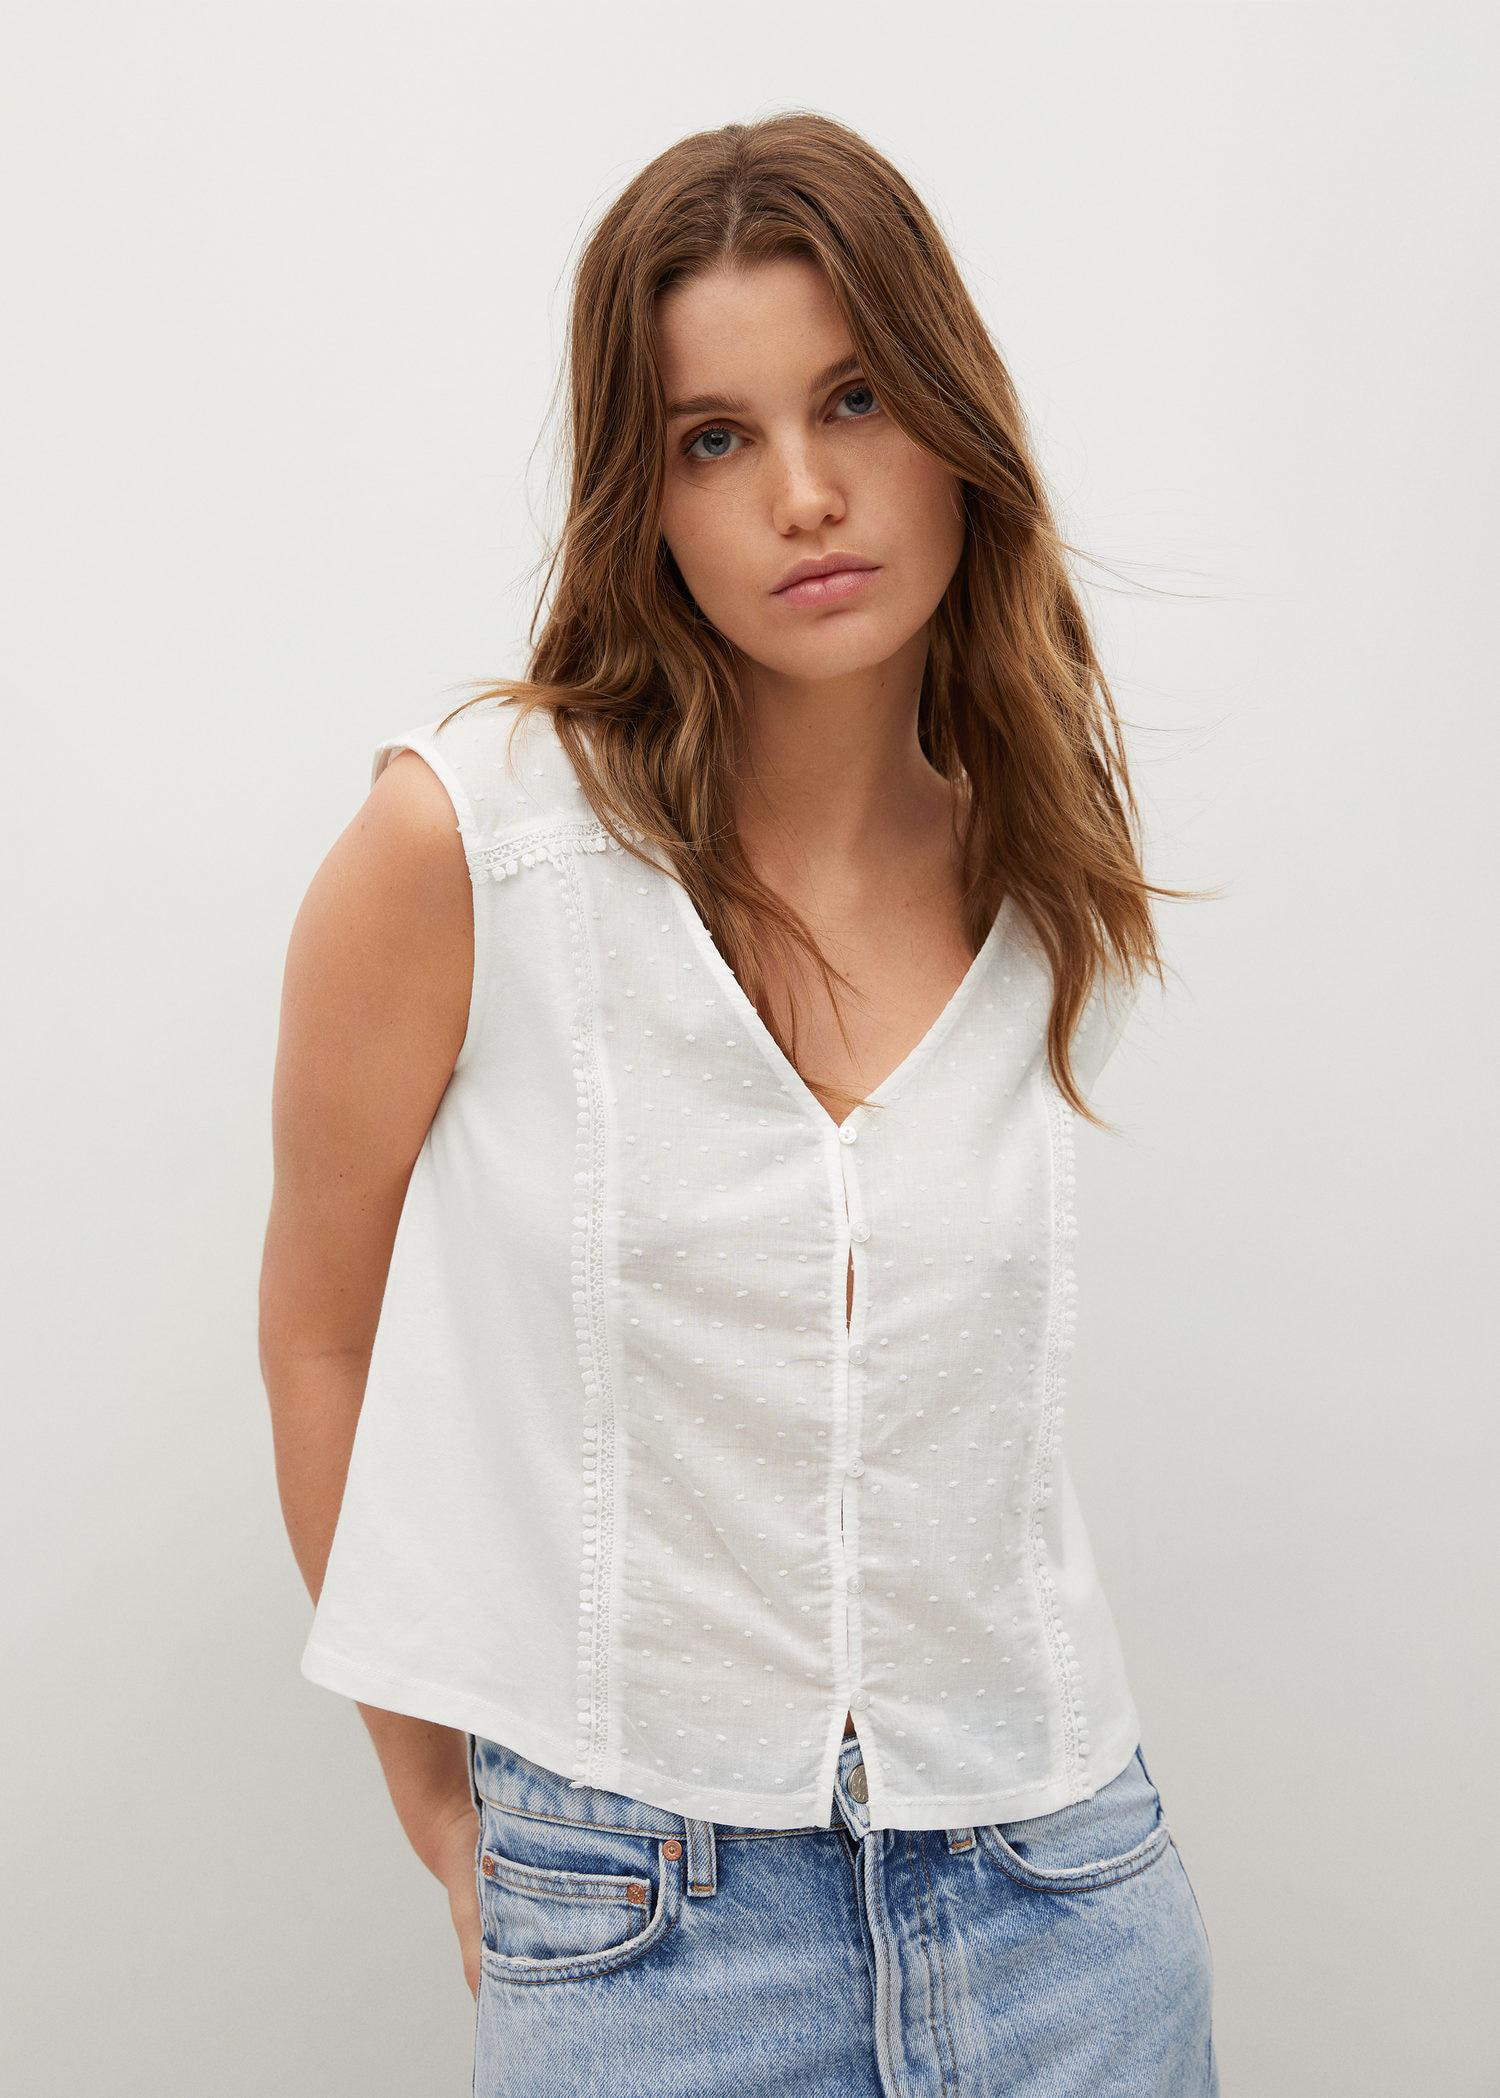 Dotted swiss cotton top